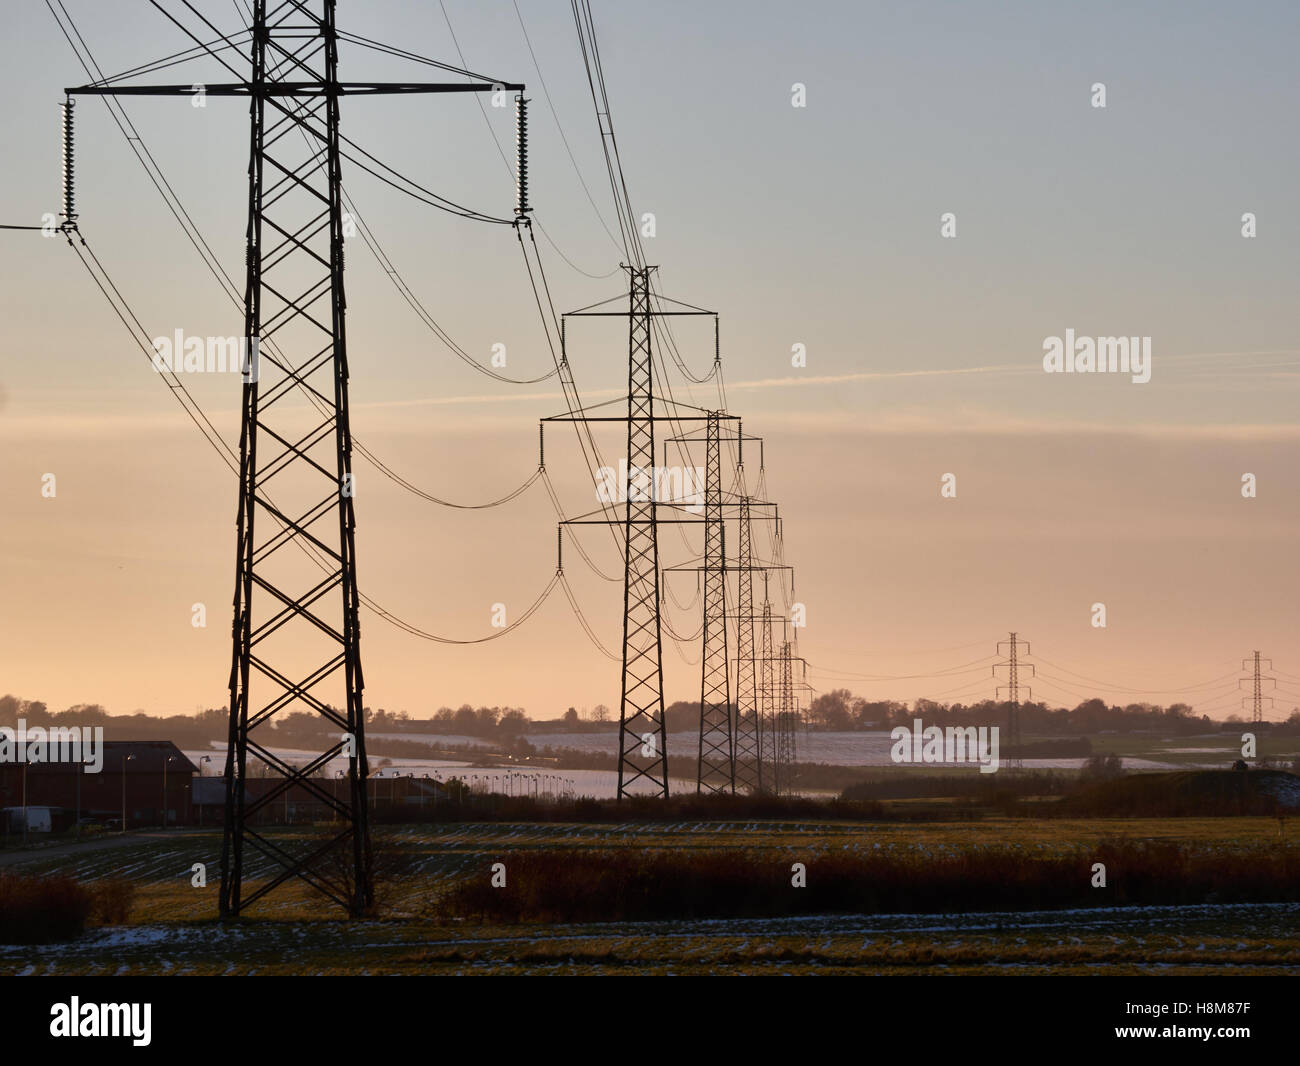 Powerlines at Dusk - Stock Image